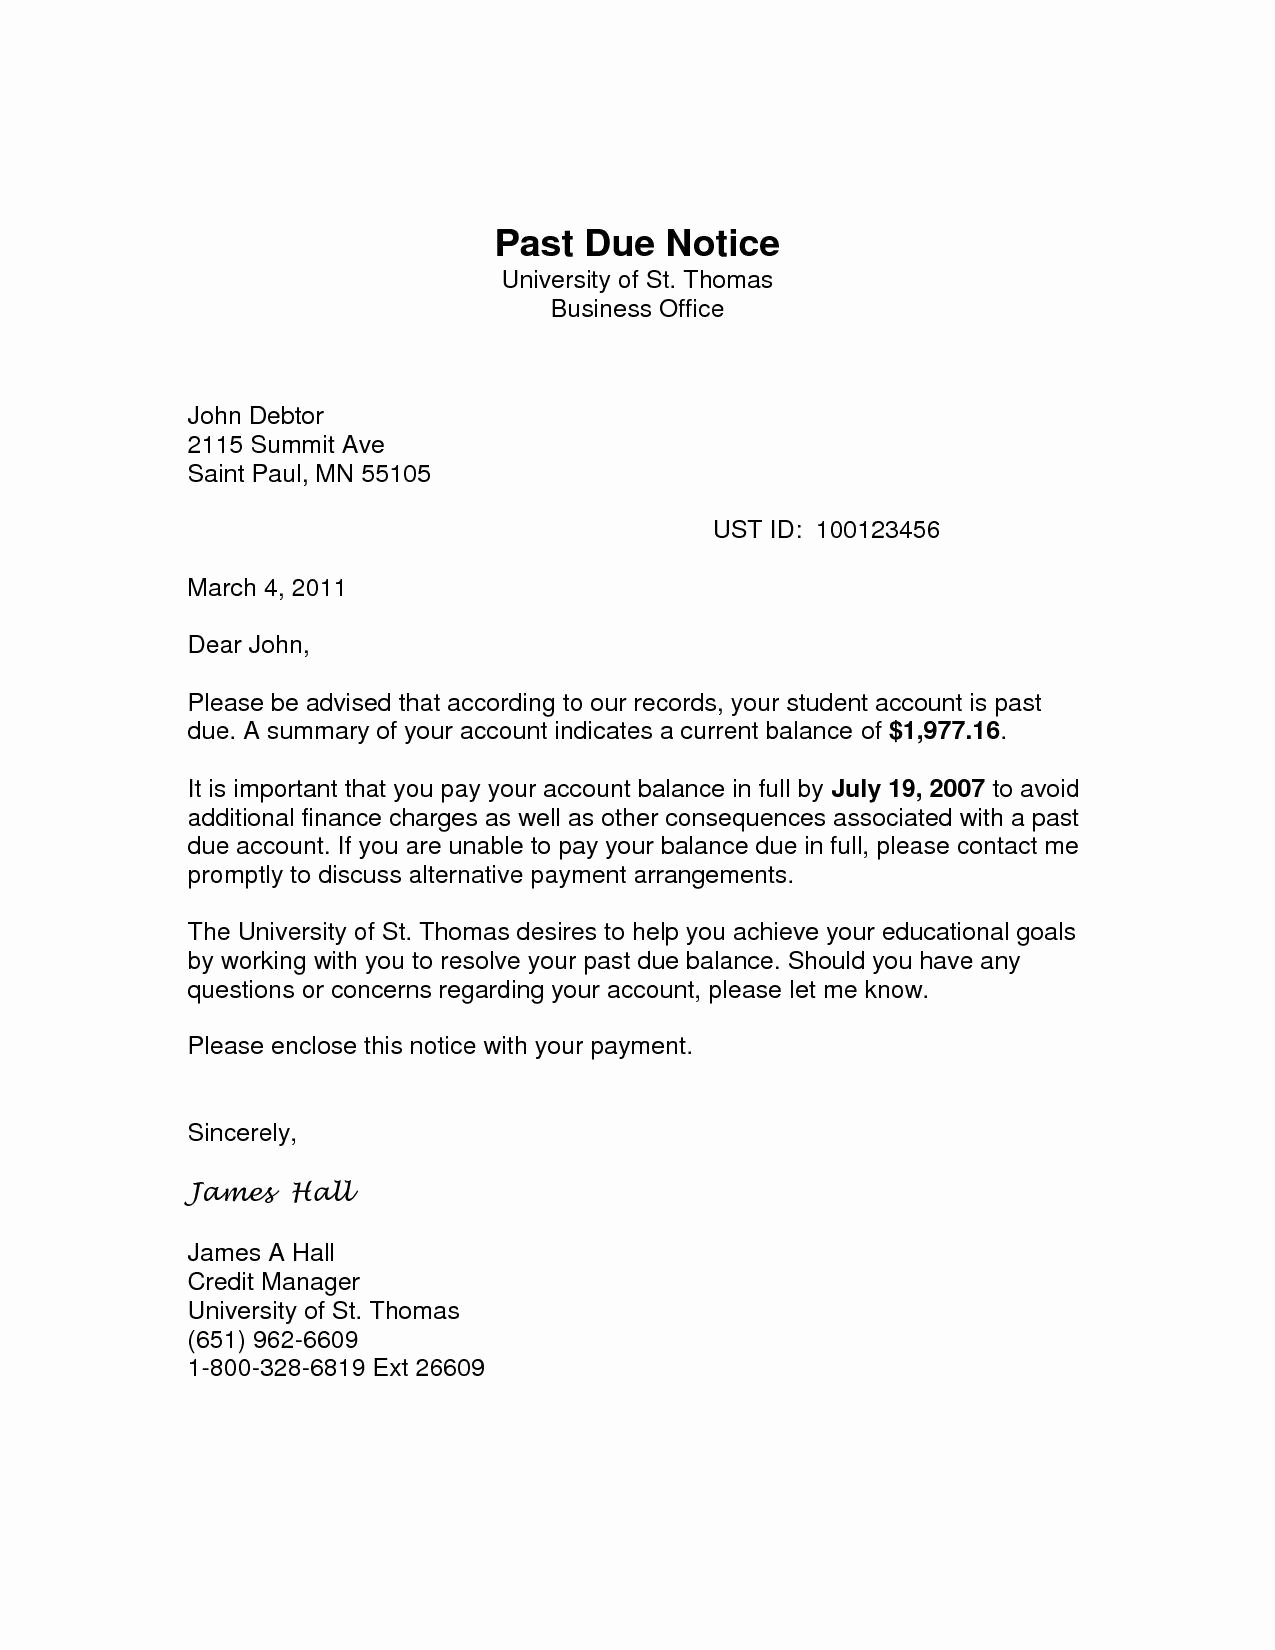 Past Due Rent Letter Best Of Excuse From Jury Duty Letter From Doctor Template Samples